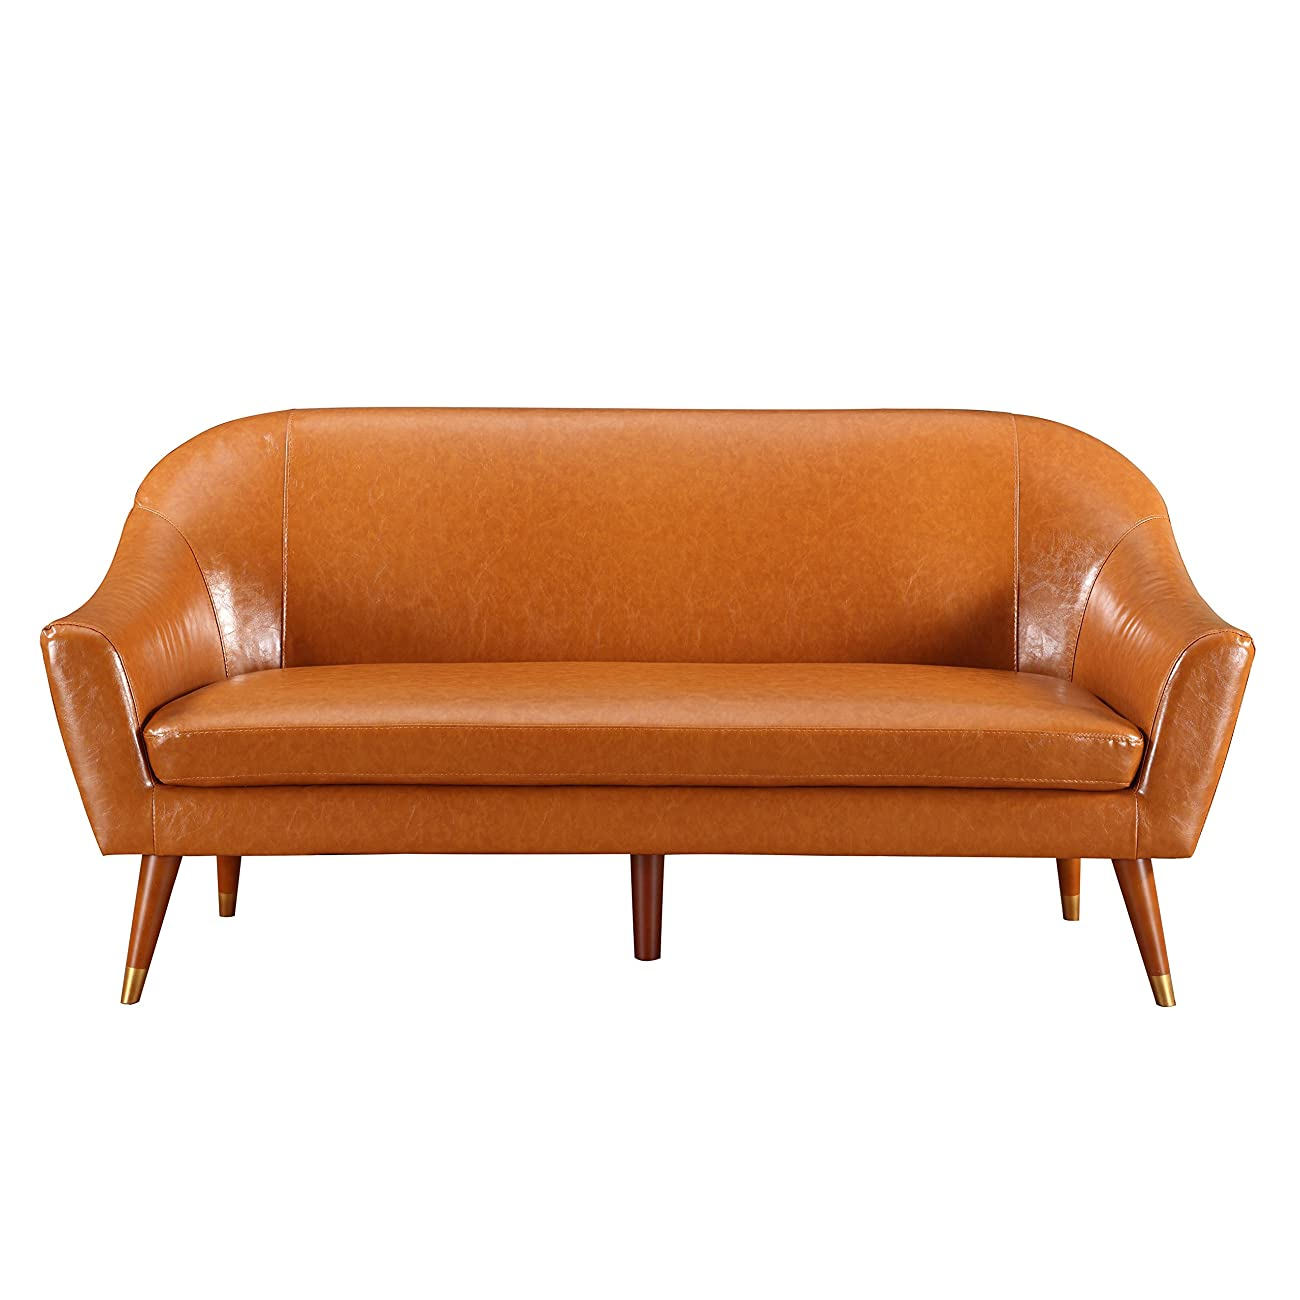 Divano Roma Furniture - Mid Century Modern Sofa - Bonded Leather 1